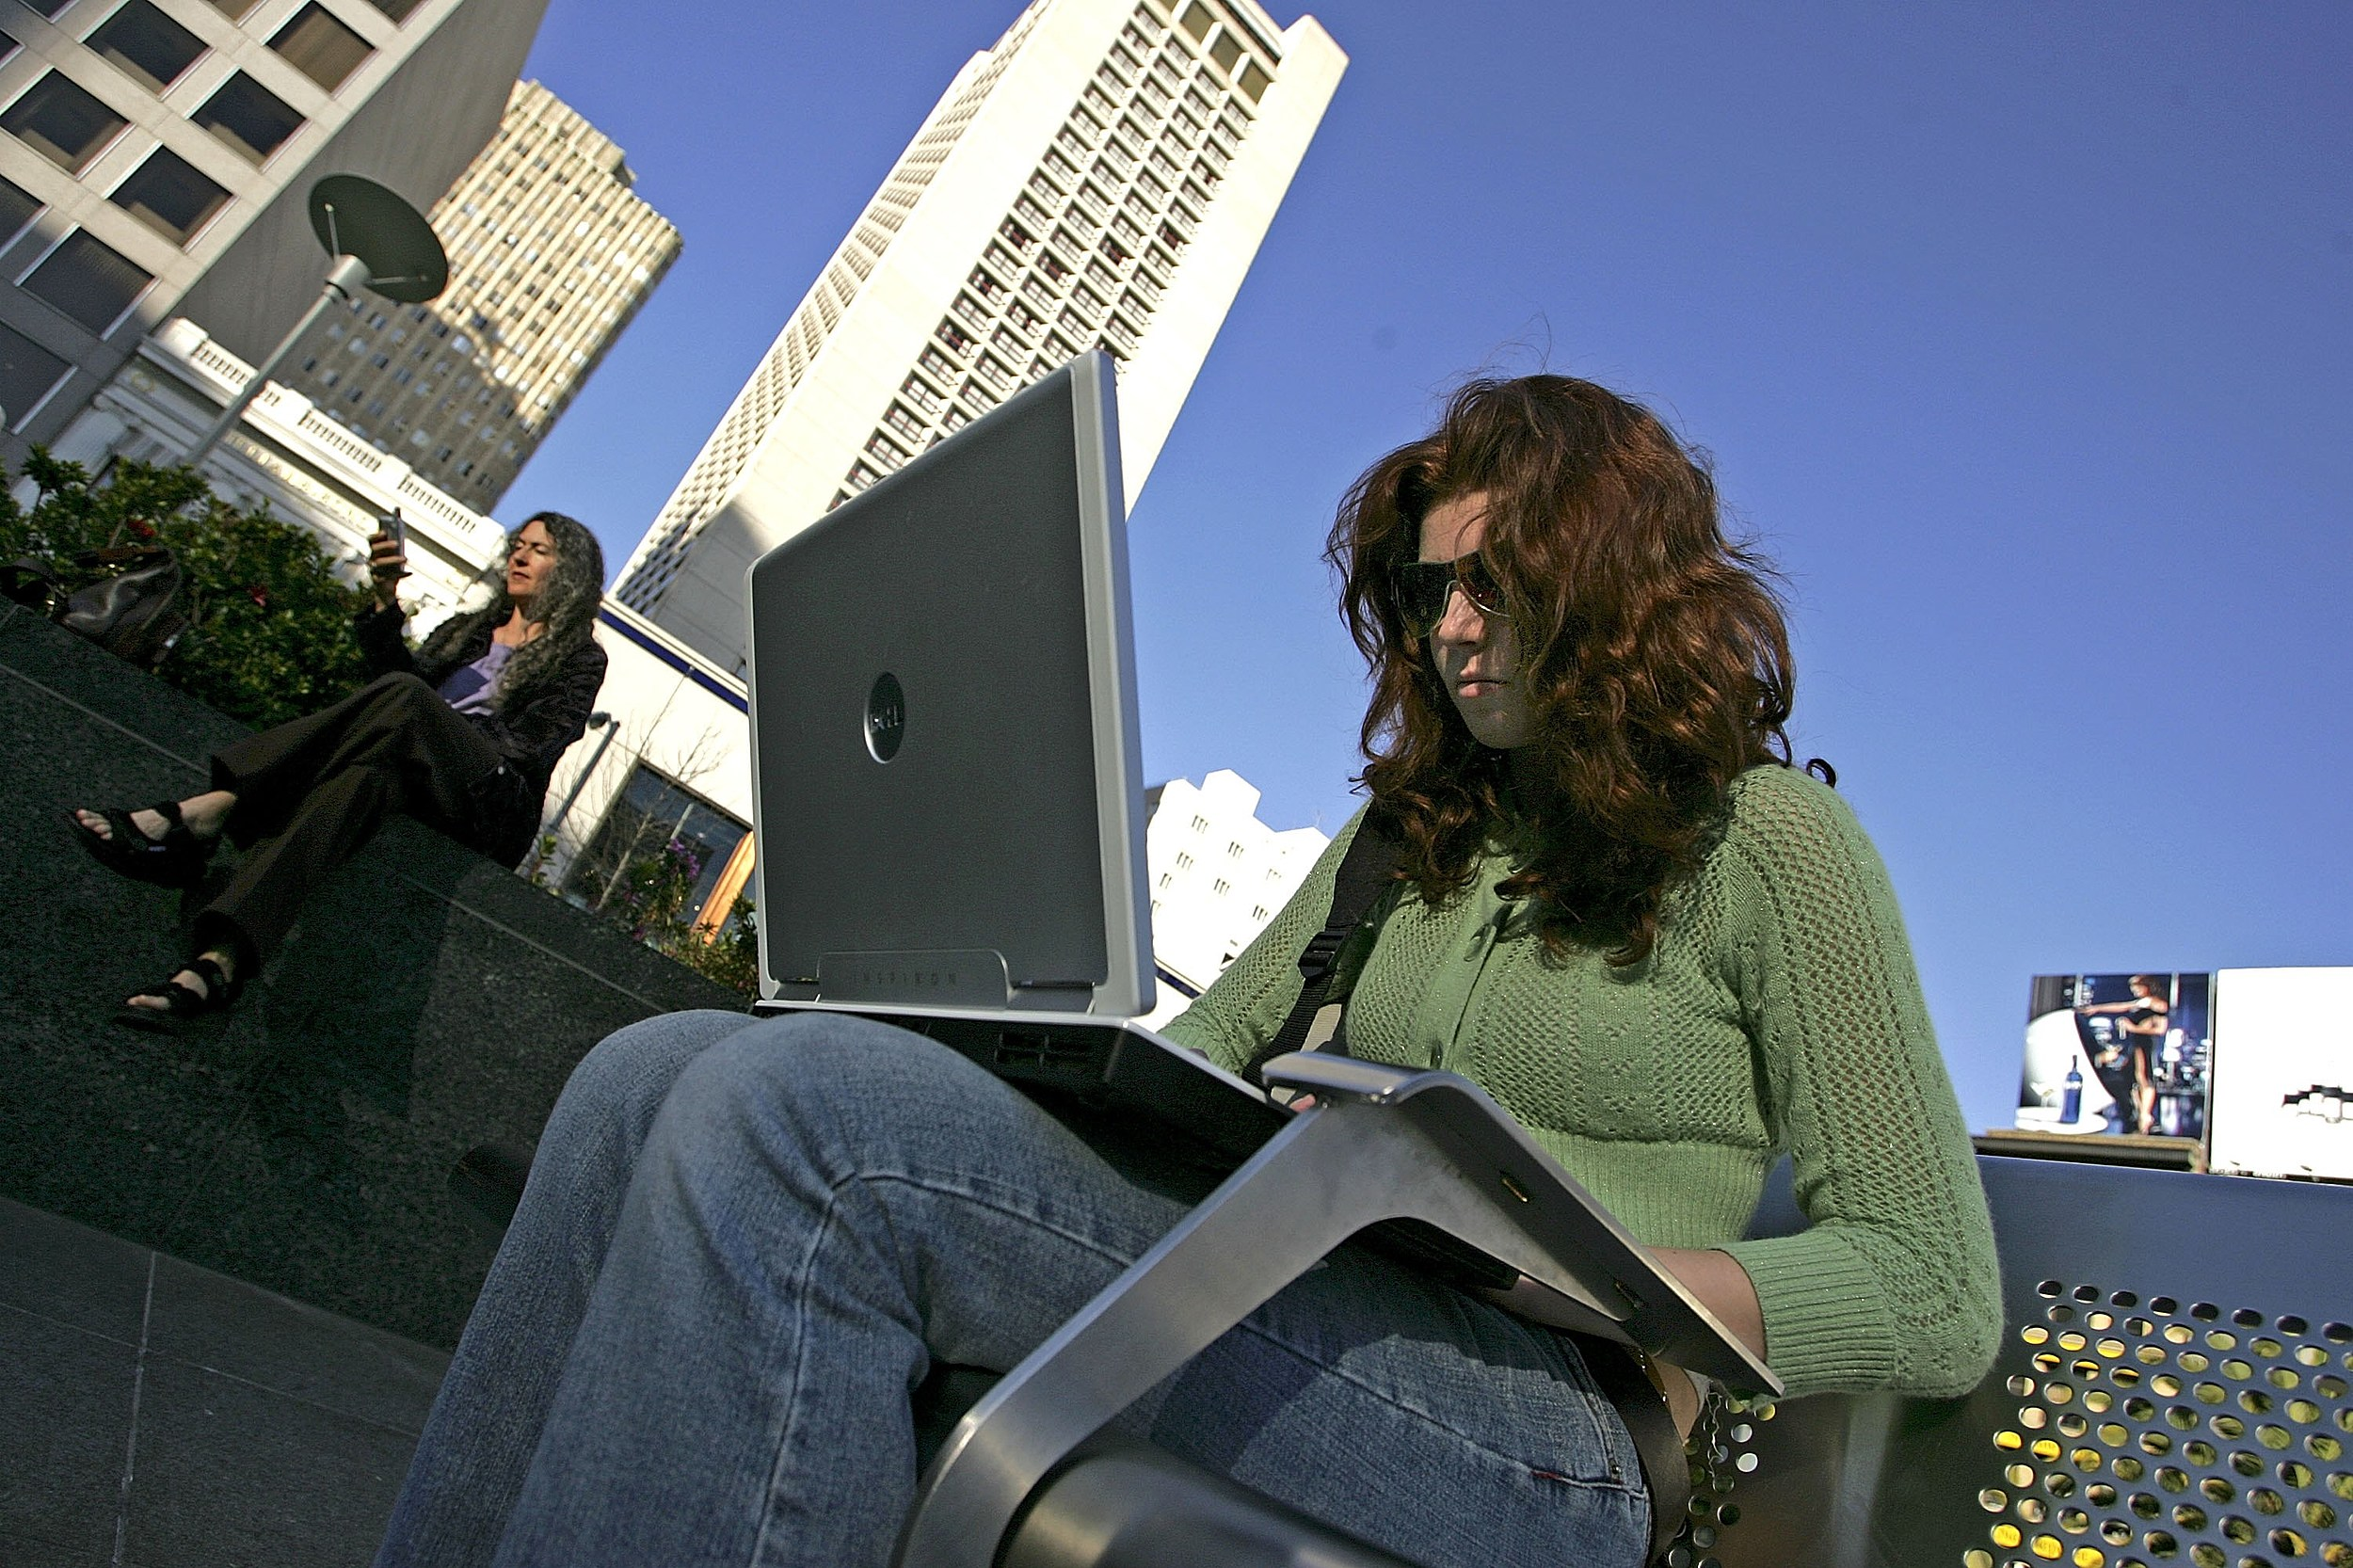 San Francisco Offers Most Wireless Access Of Any U.S. City